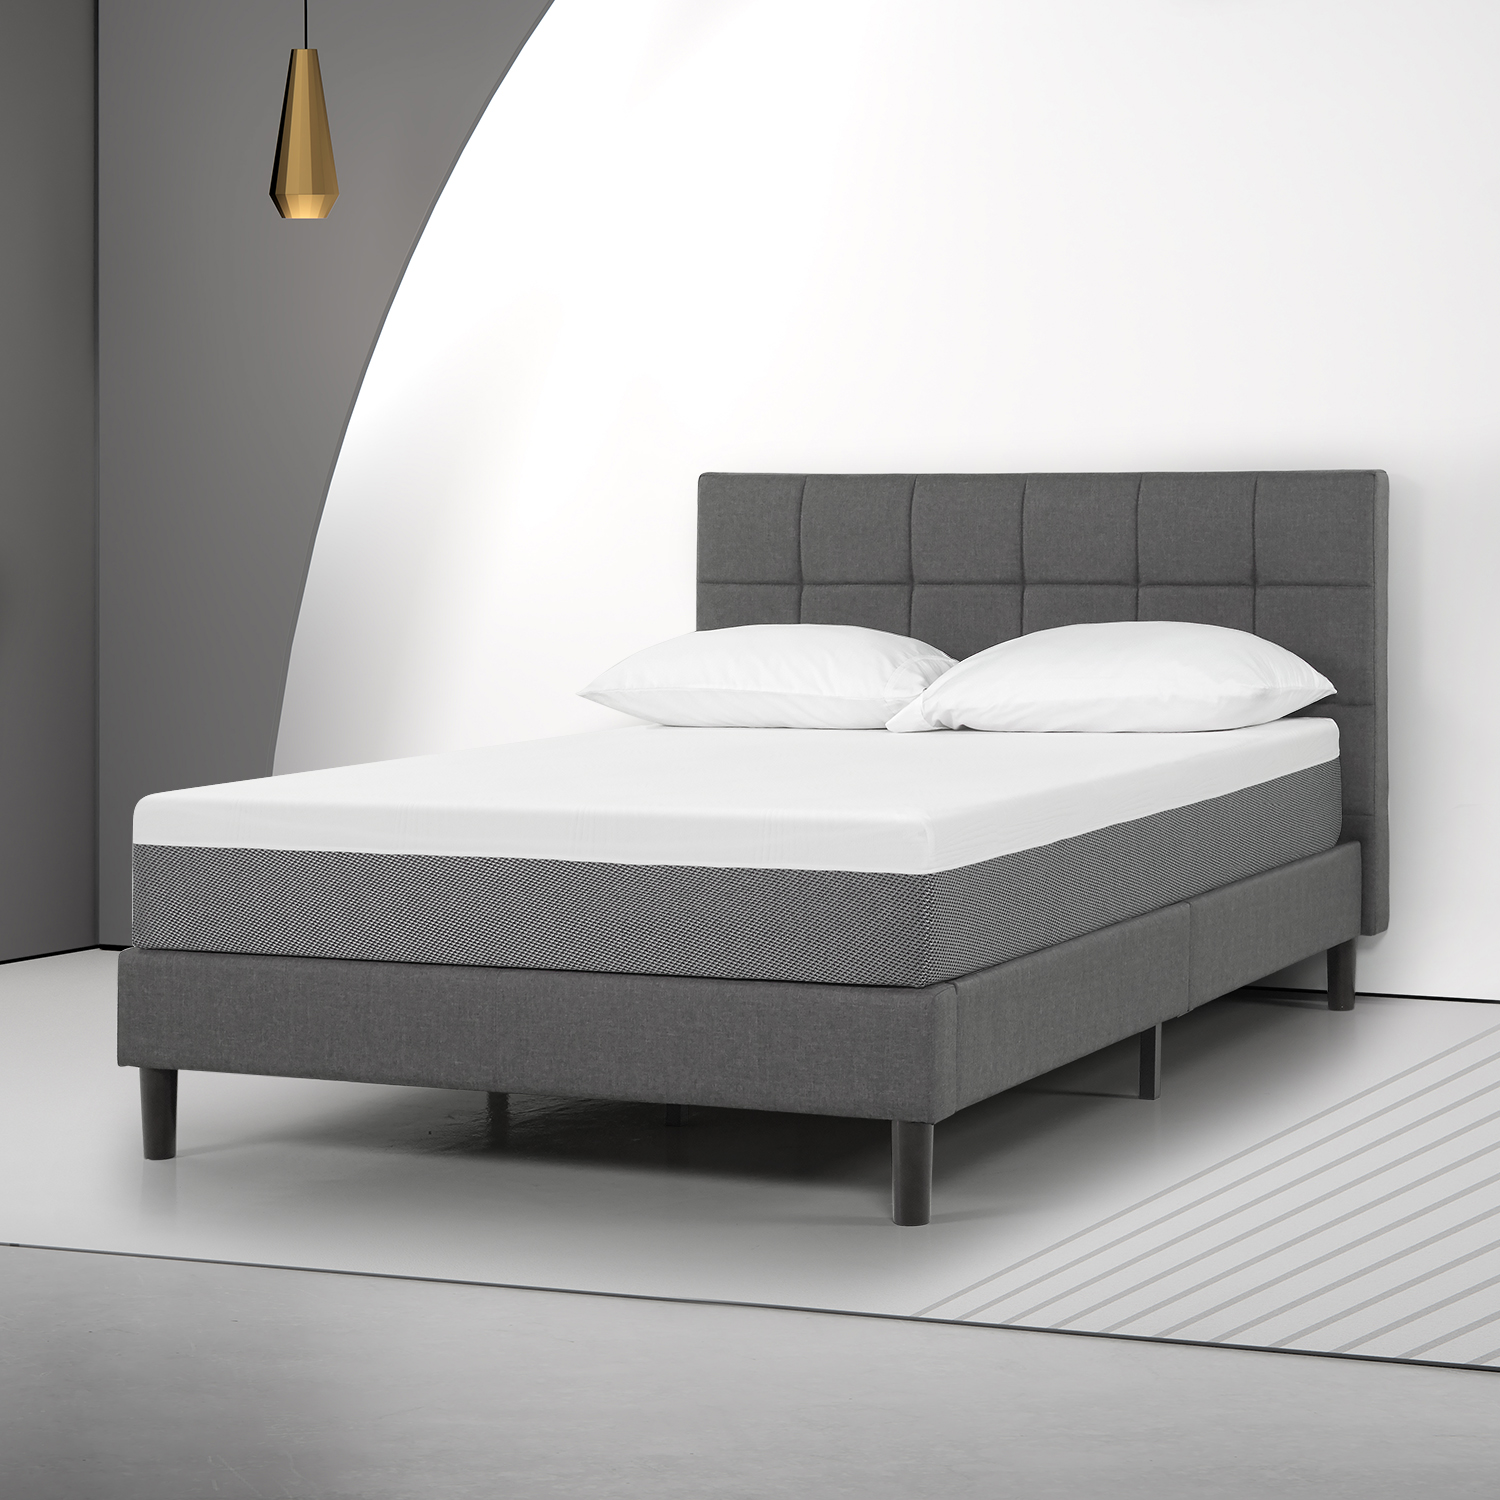 "Spa Sensations by Zinus 10"" Eco-Sense Memory Foam Mattress ..."